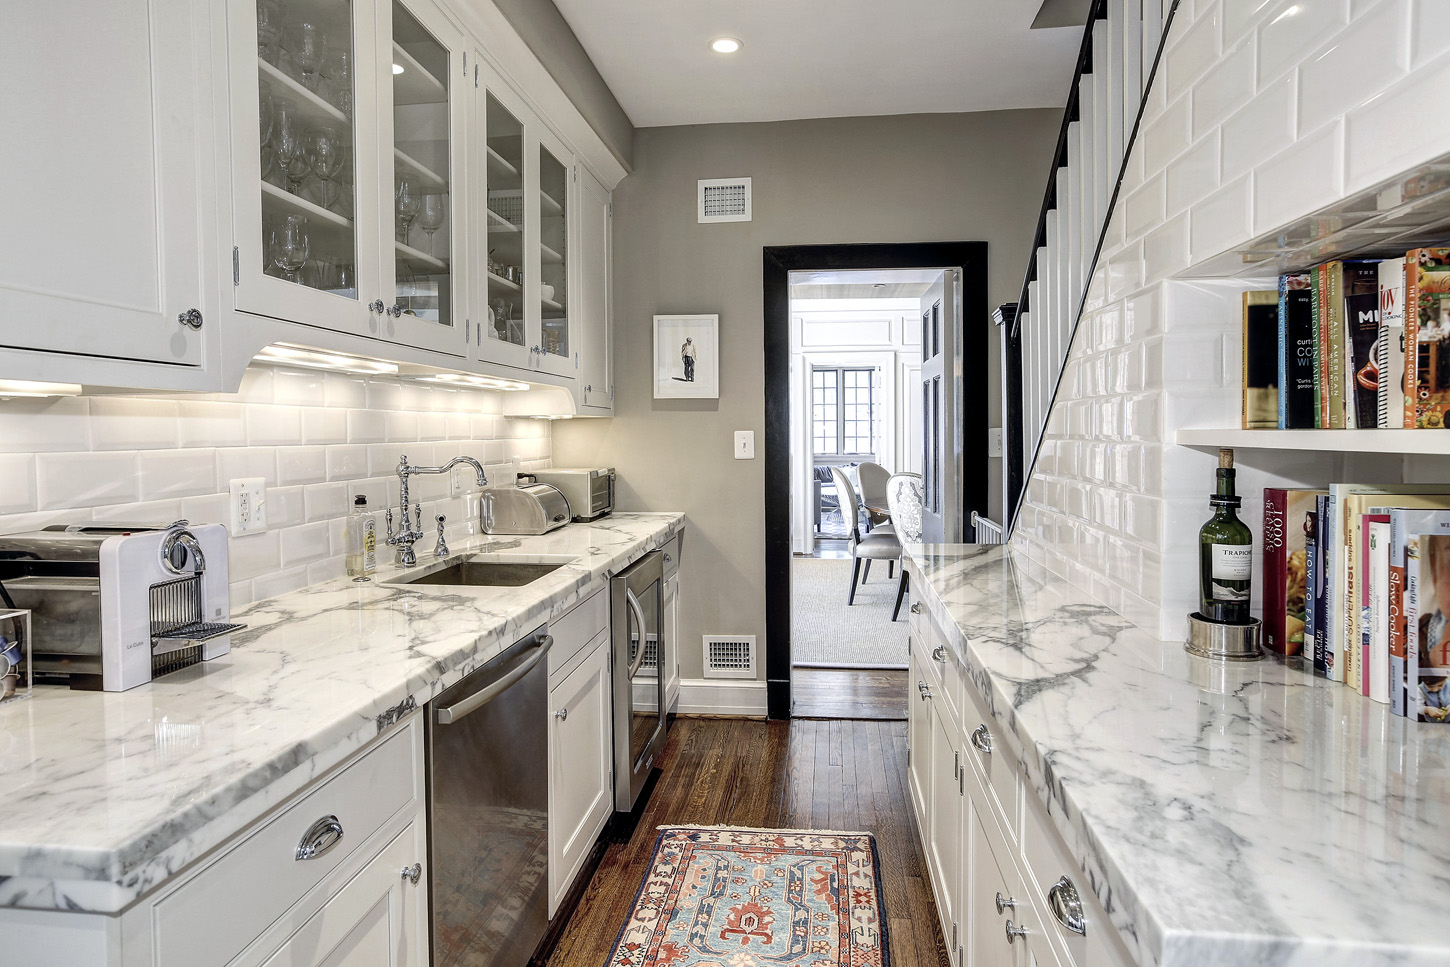 The butler's pantry of the Obamas' new house, in the Kalorama area of Northwest D.C. (Courtesy McFadden Group)